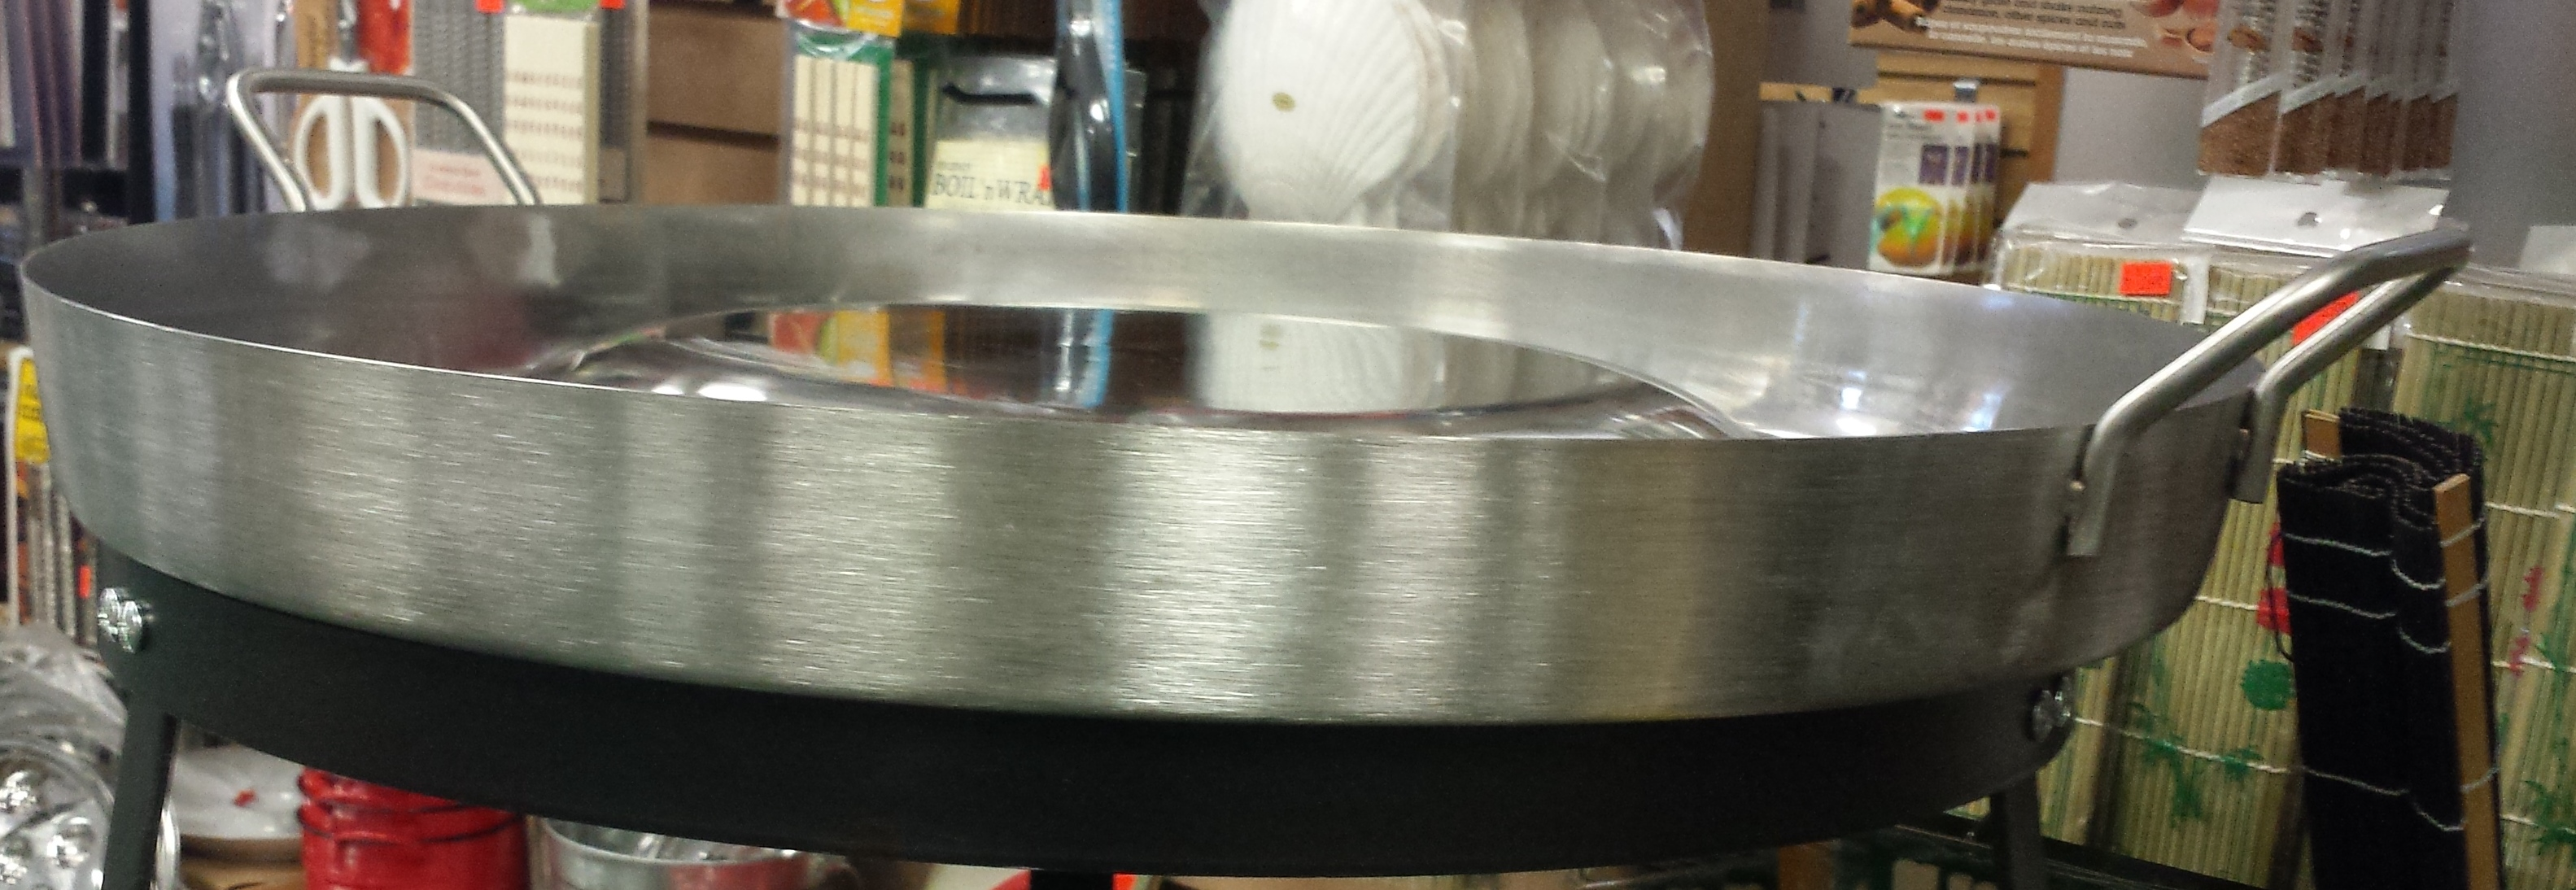 Large Stainless Steel Outdoor Cookware